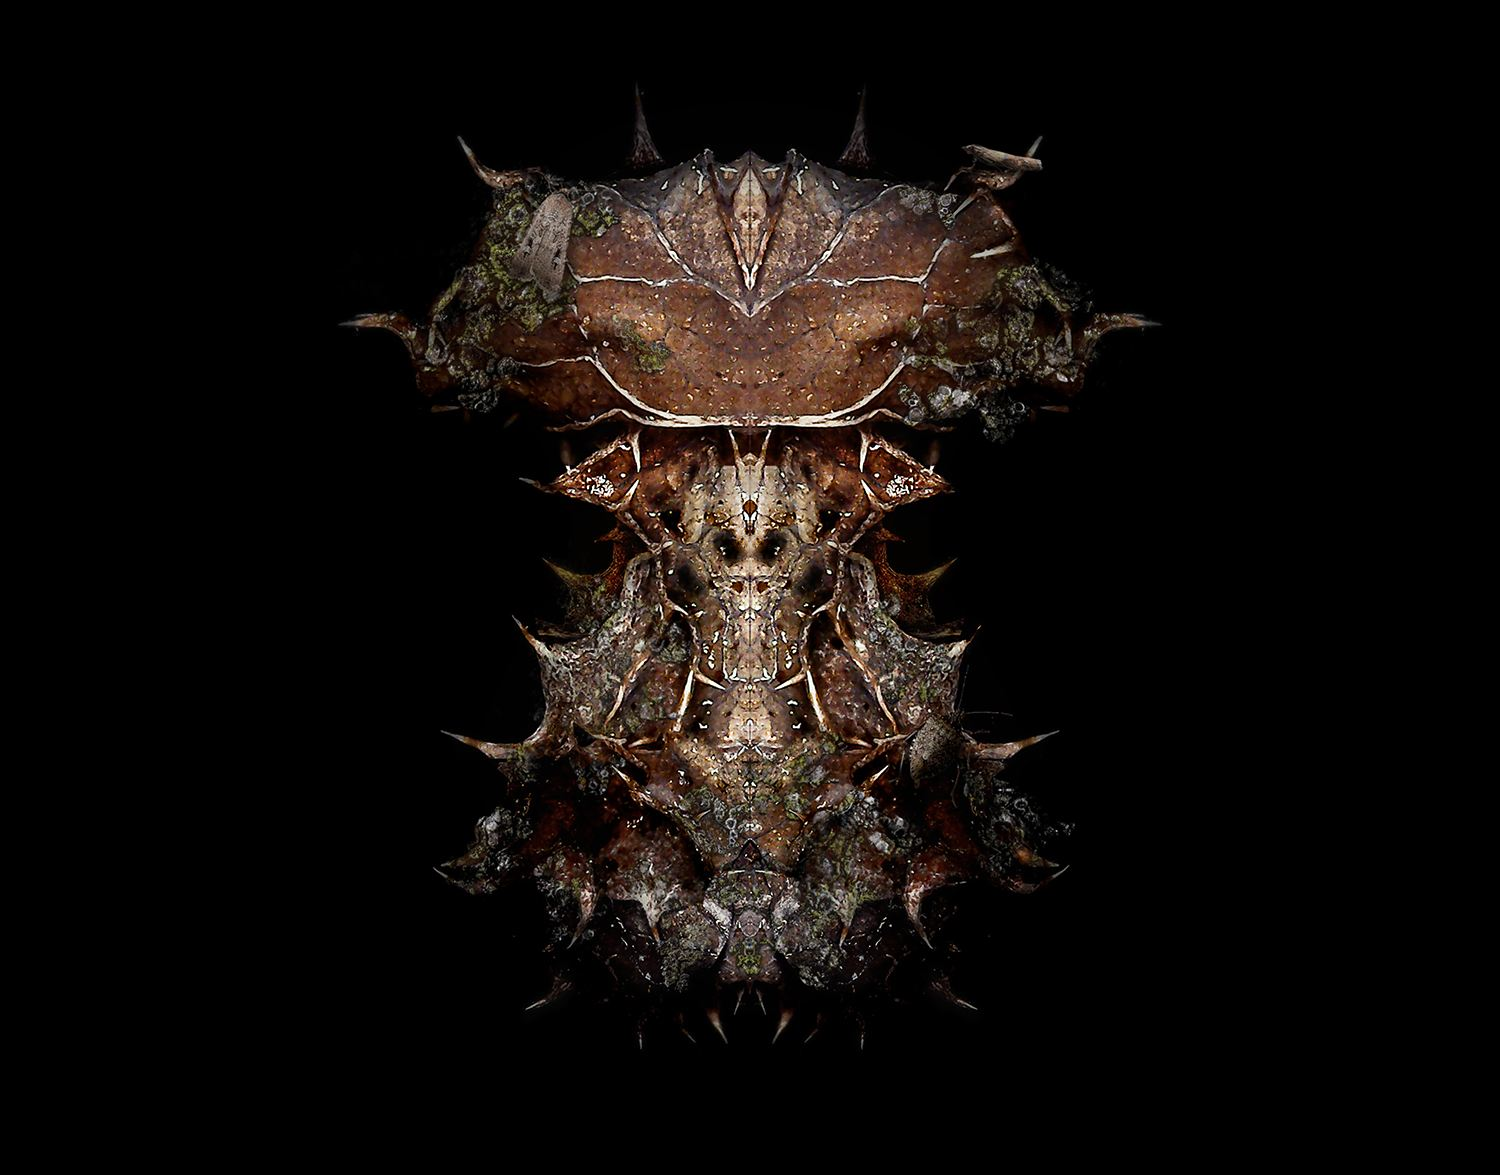 alien like, insect like, digital art, Found Awareness by Chris Slabber